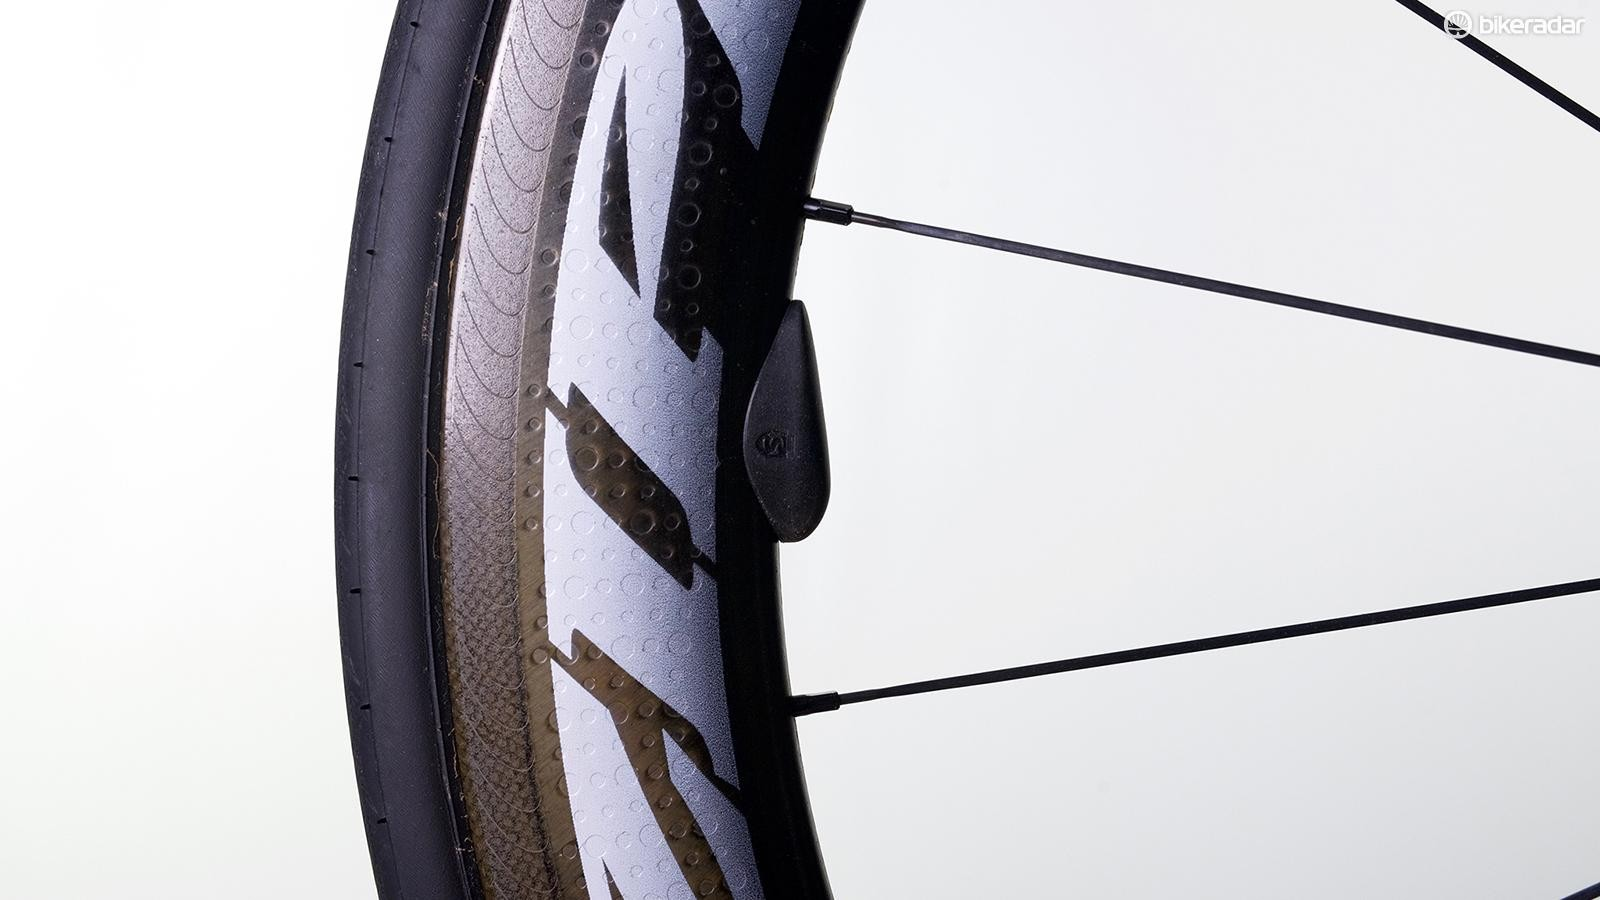 The SpeedBalance uses a 3M adhesive to stick to carbon rims